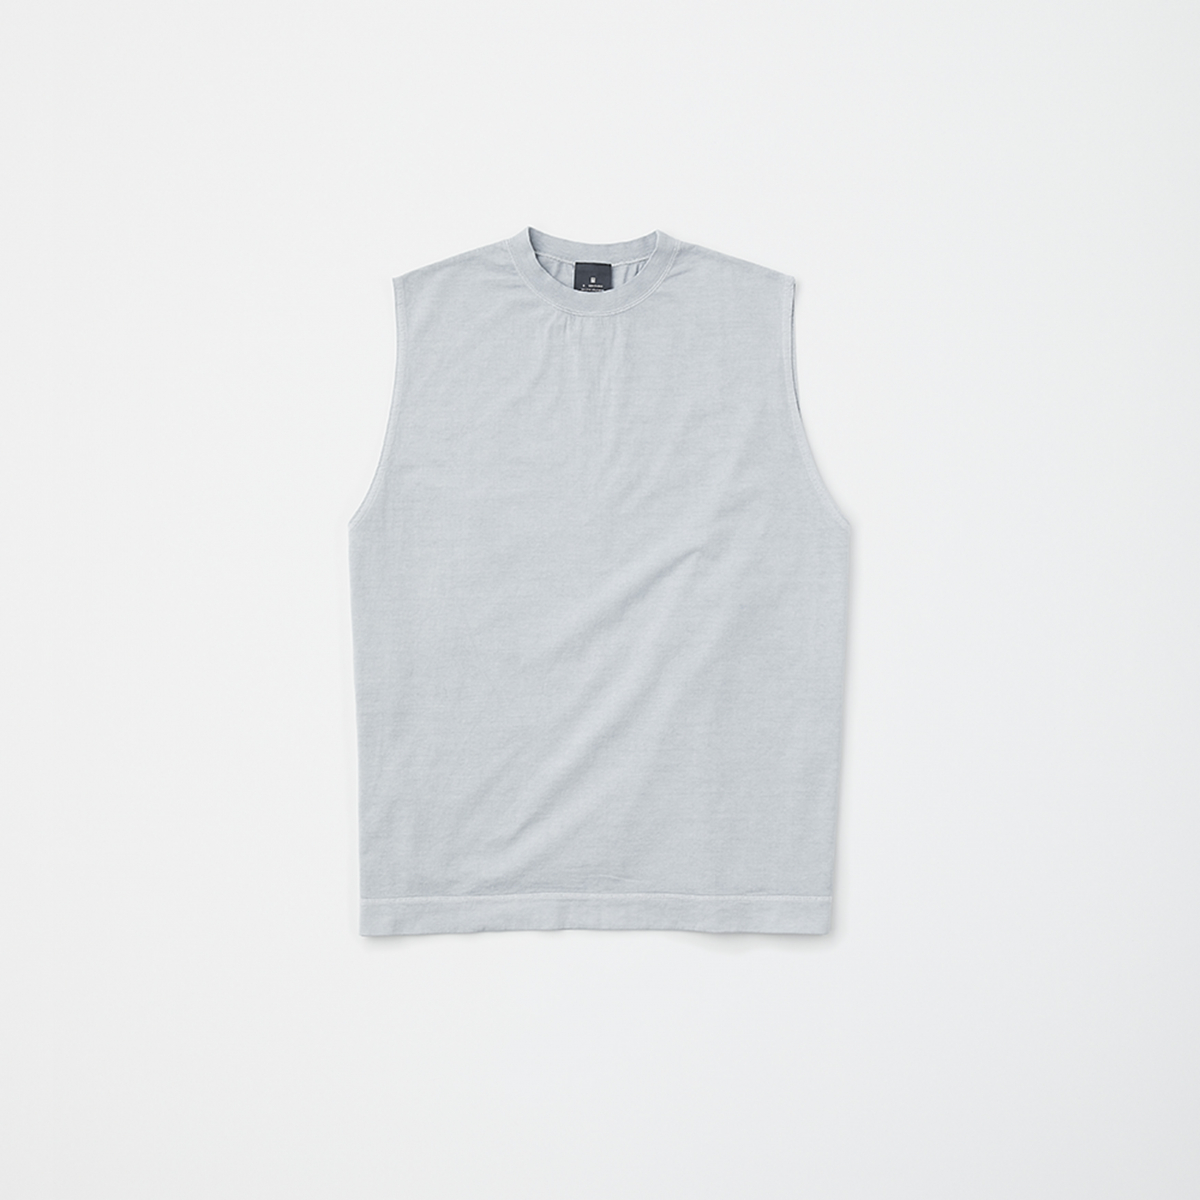 N.HOOLYWOOD TANK TOP PACKAGE LIGHT GRAY ¥17,000(セット内容:N.HOOLYWOOD TANK TOP、STUFF BAG GRAY、FIVEISM × THEEE FF コントロール UV ツール サシェ(2連包)×4包、FIVEISM × THEEE パージ パフォーマンス ワイプス×7包/今夏発売予定)